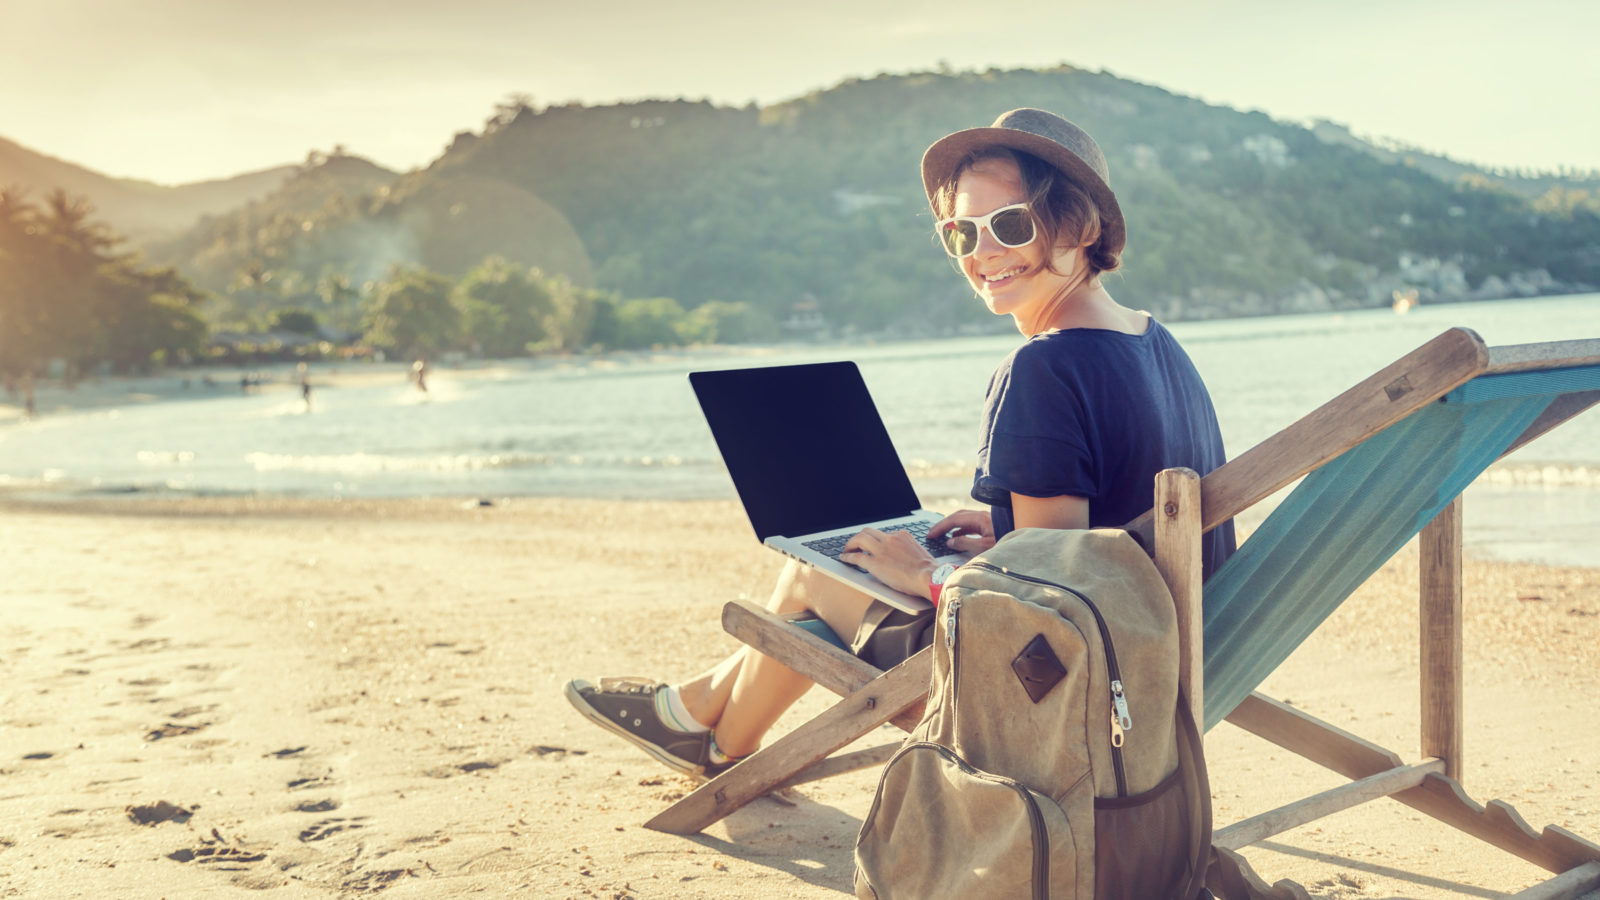 photo of blogger working on beach with laptop